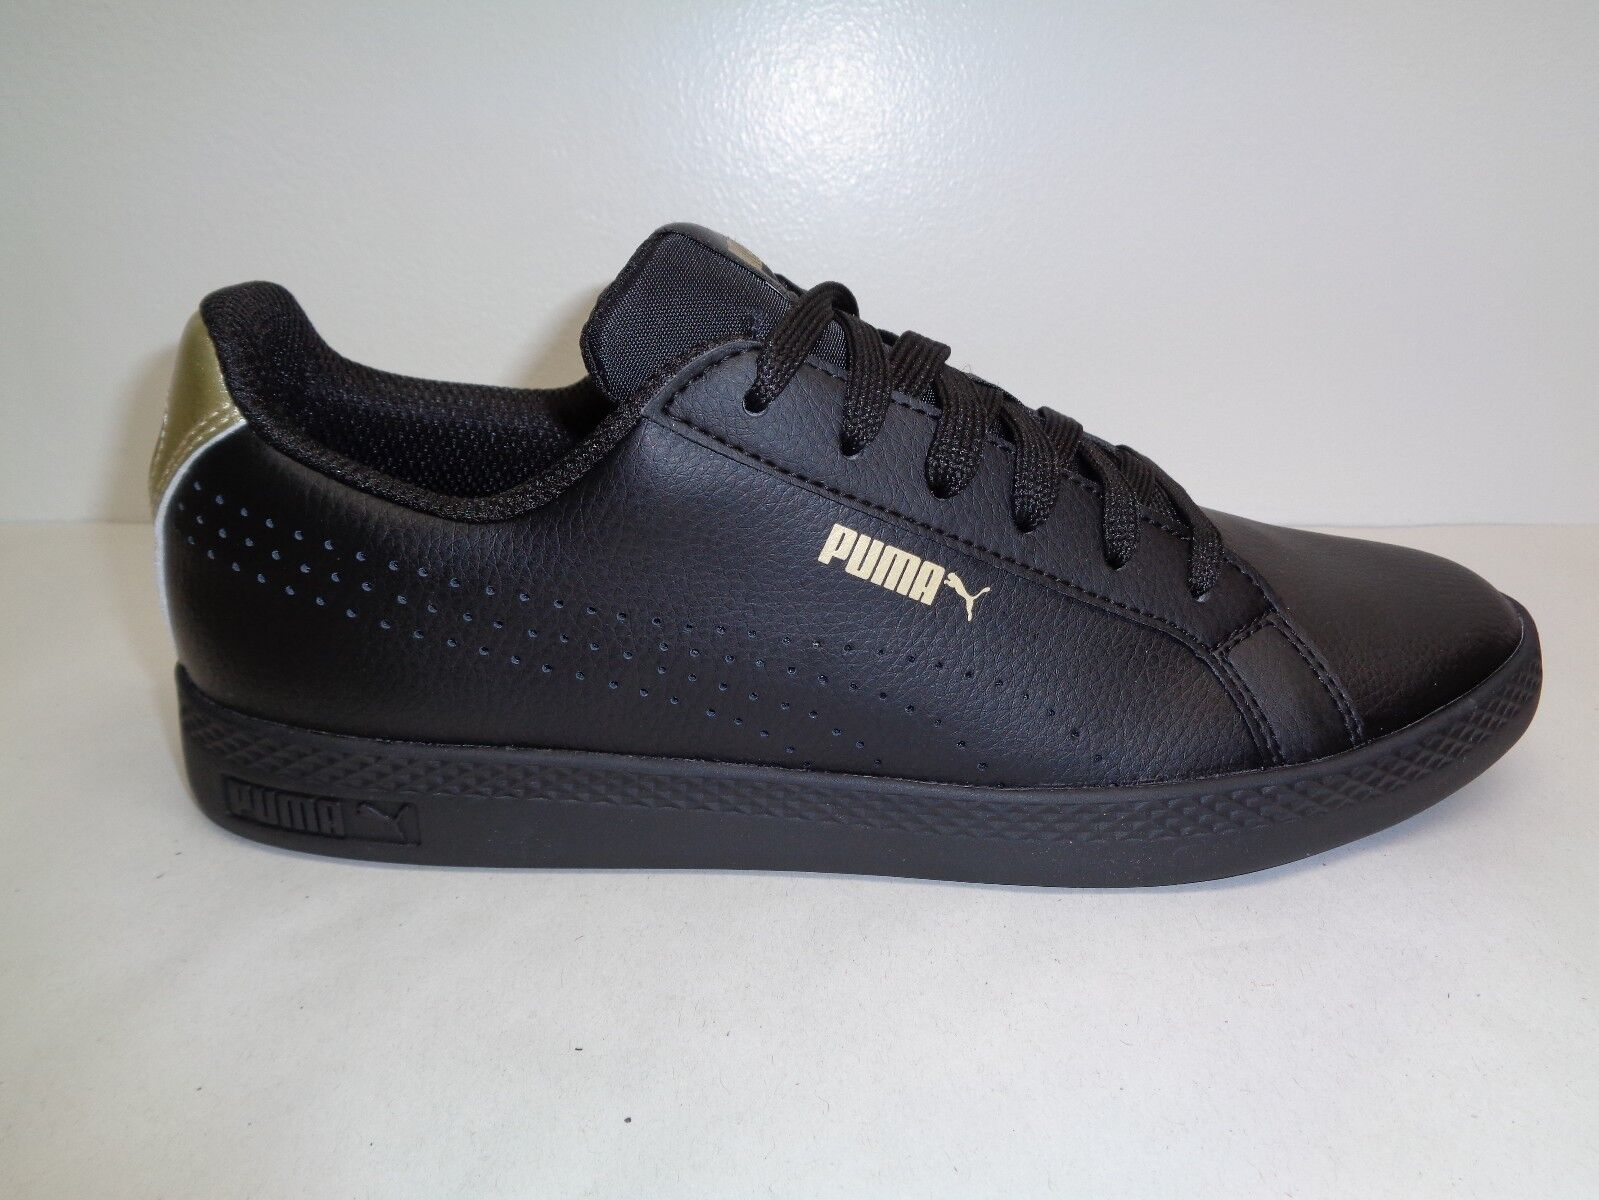 Puma Size 10 10 10 SMASH PERFORATED METALLIC Black Leather Sneakers New Womens shoes c1cea3